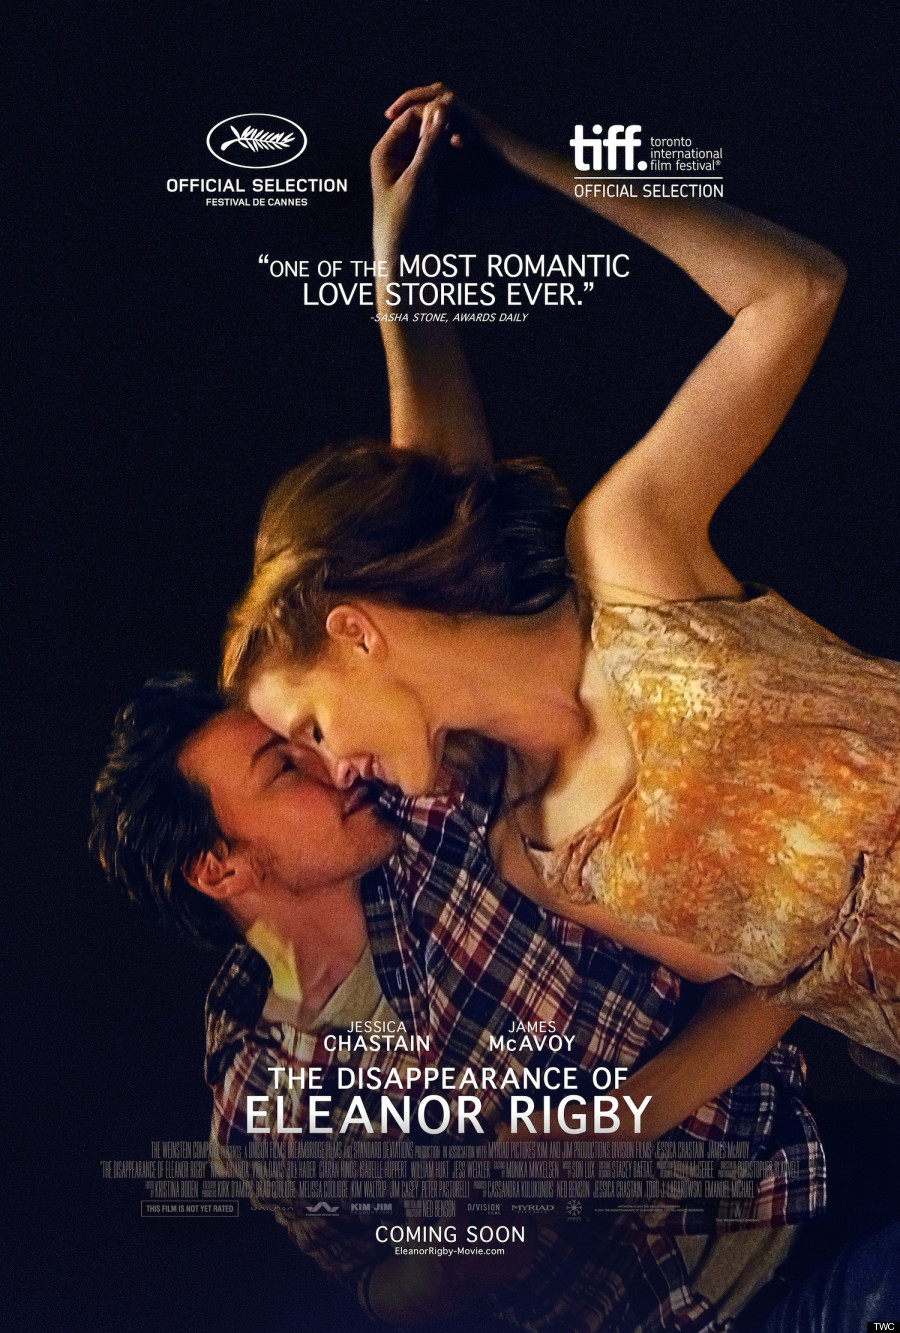 The Disappearance Of Eleanor Rigby Review